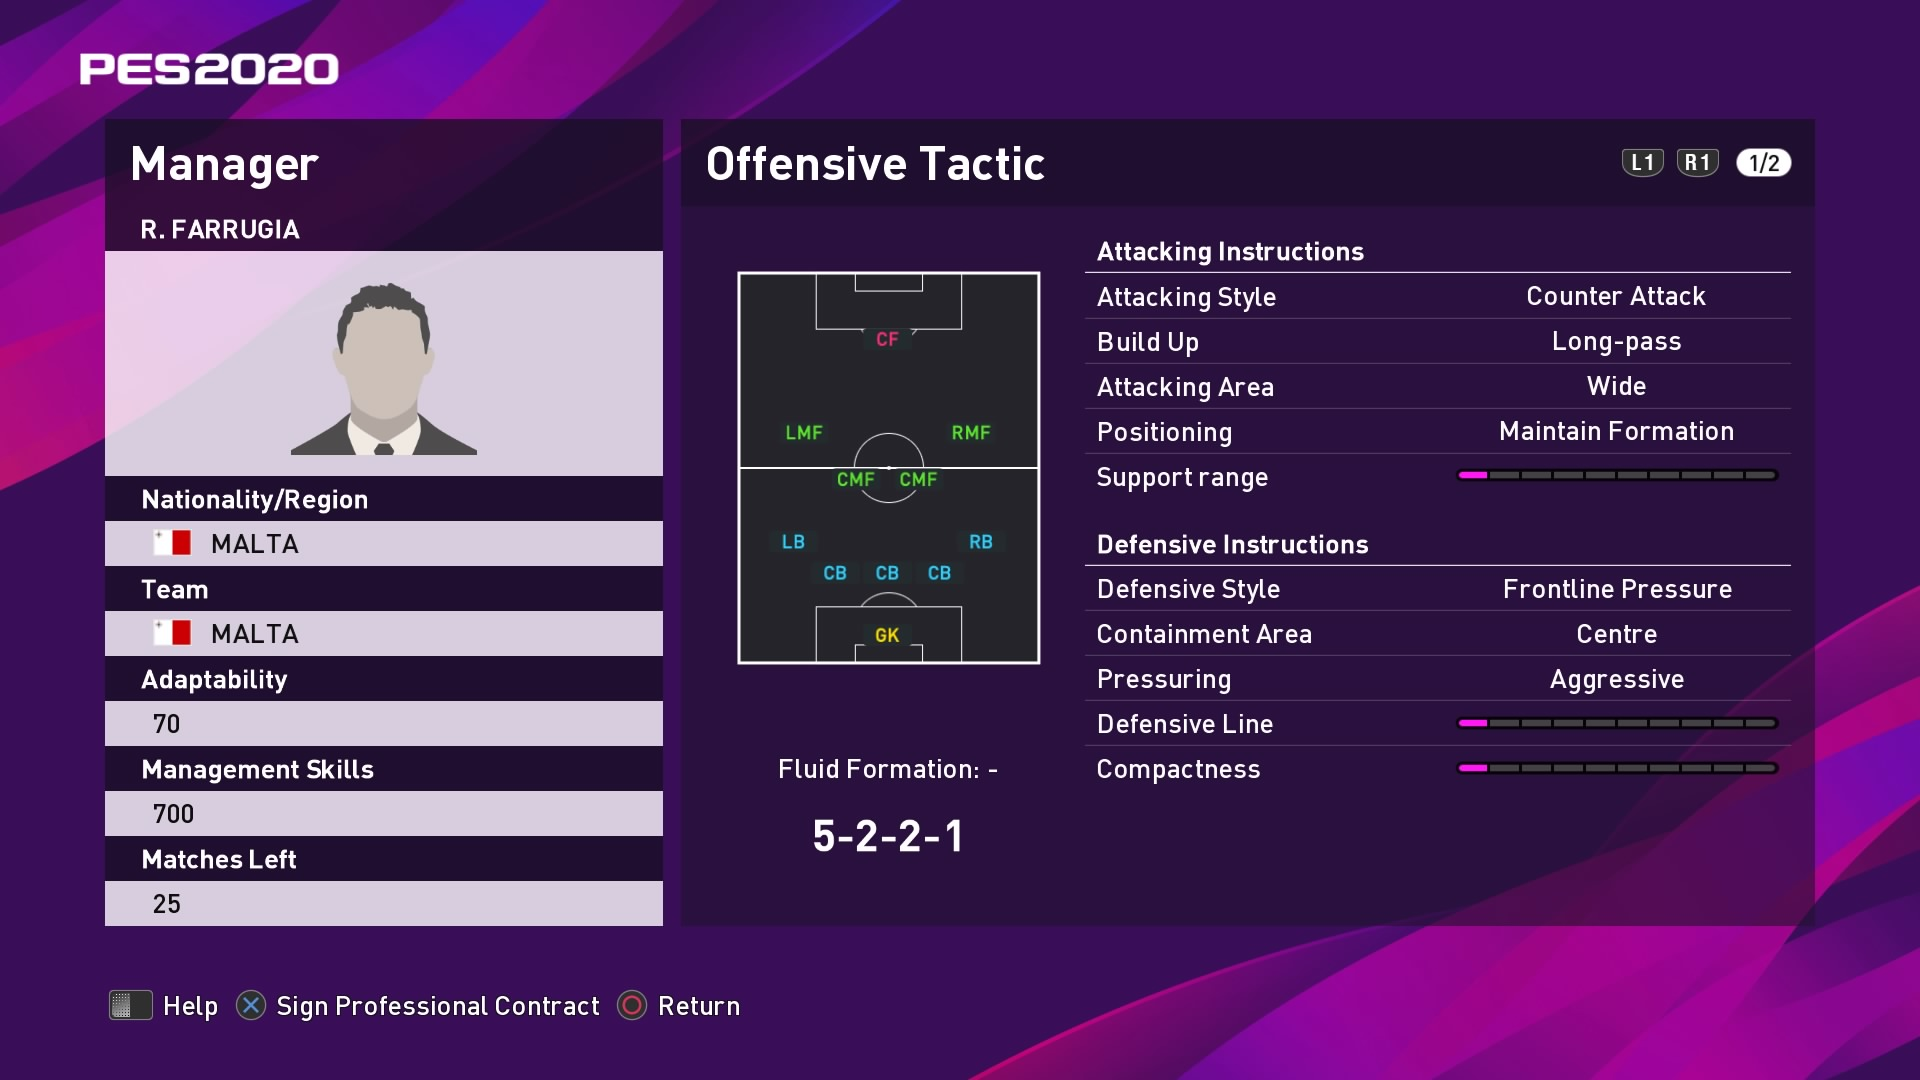 R. Farrugia (Ray Farrugia) Offensive Tactic in PES 2020 myClub